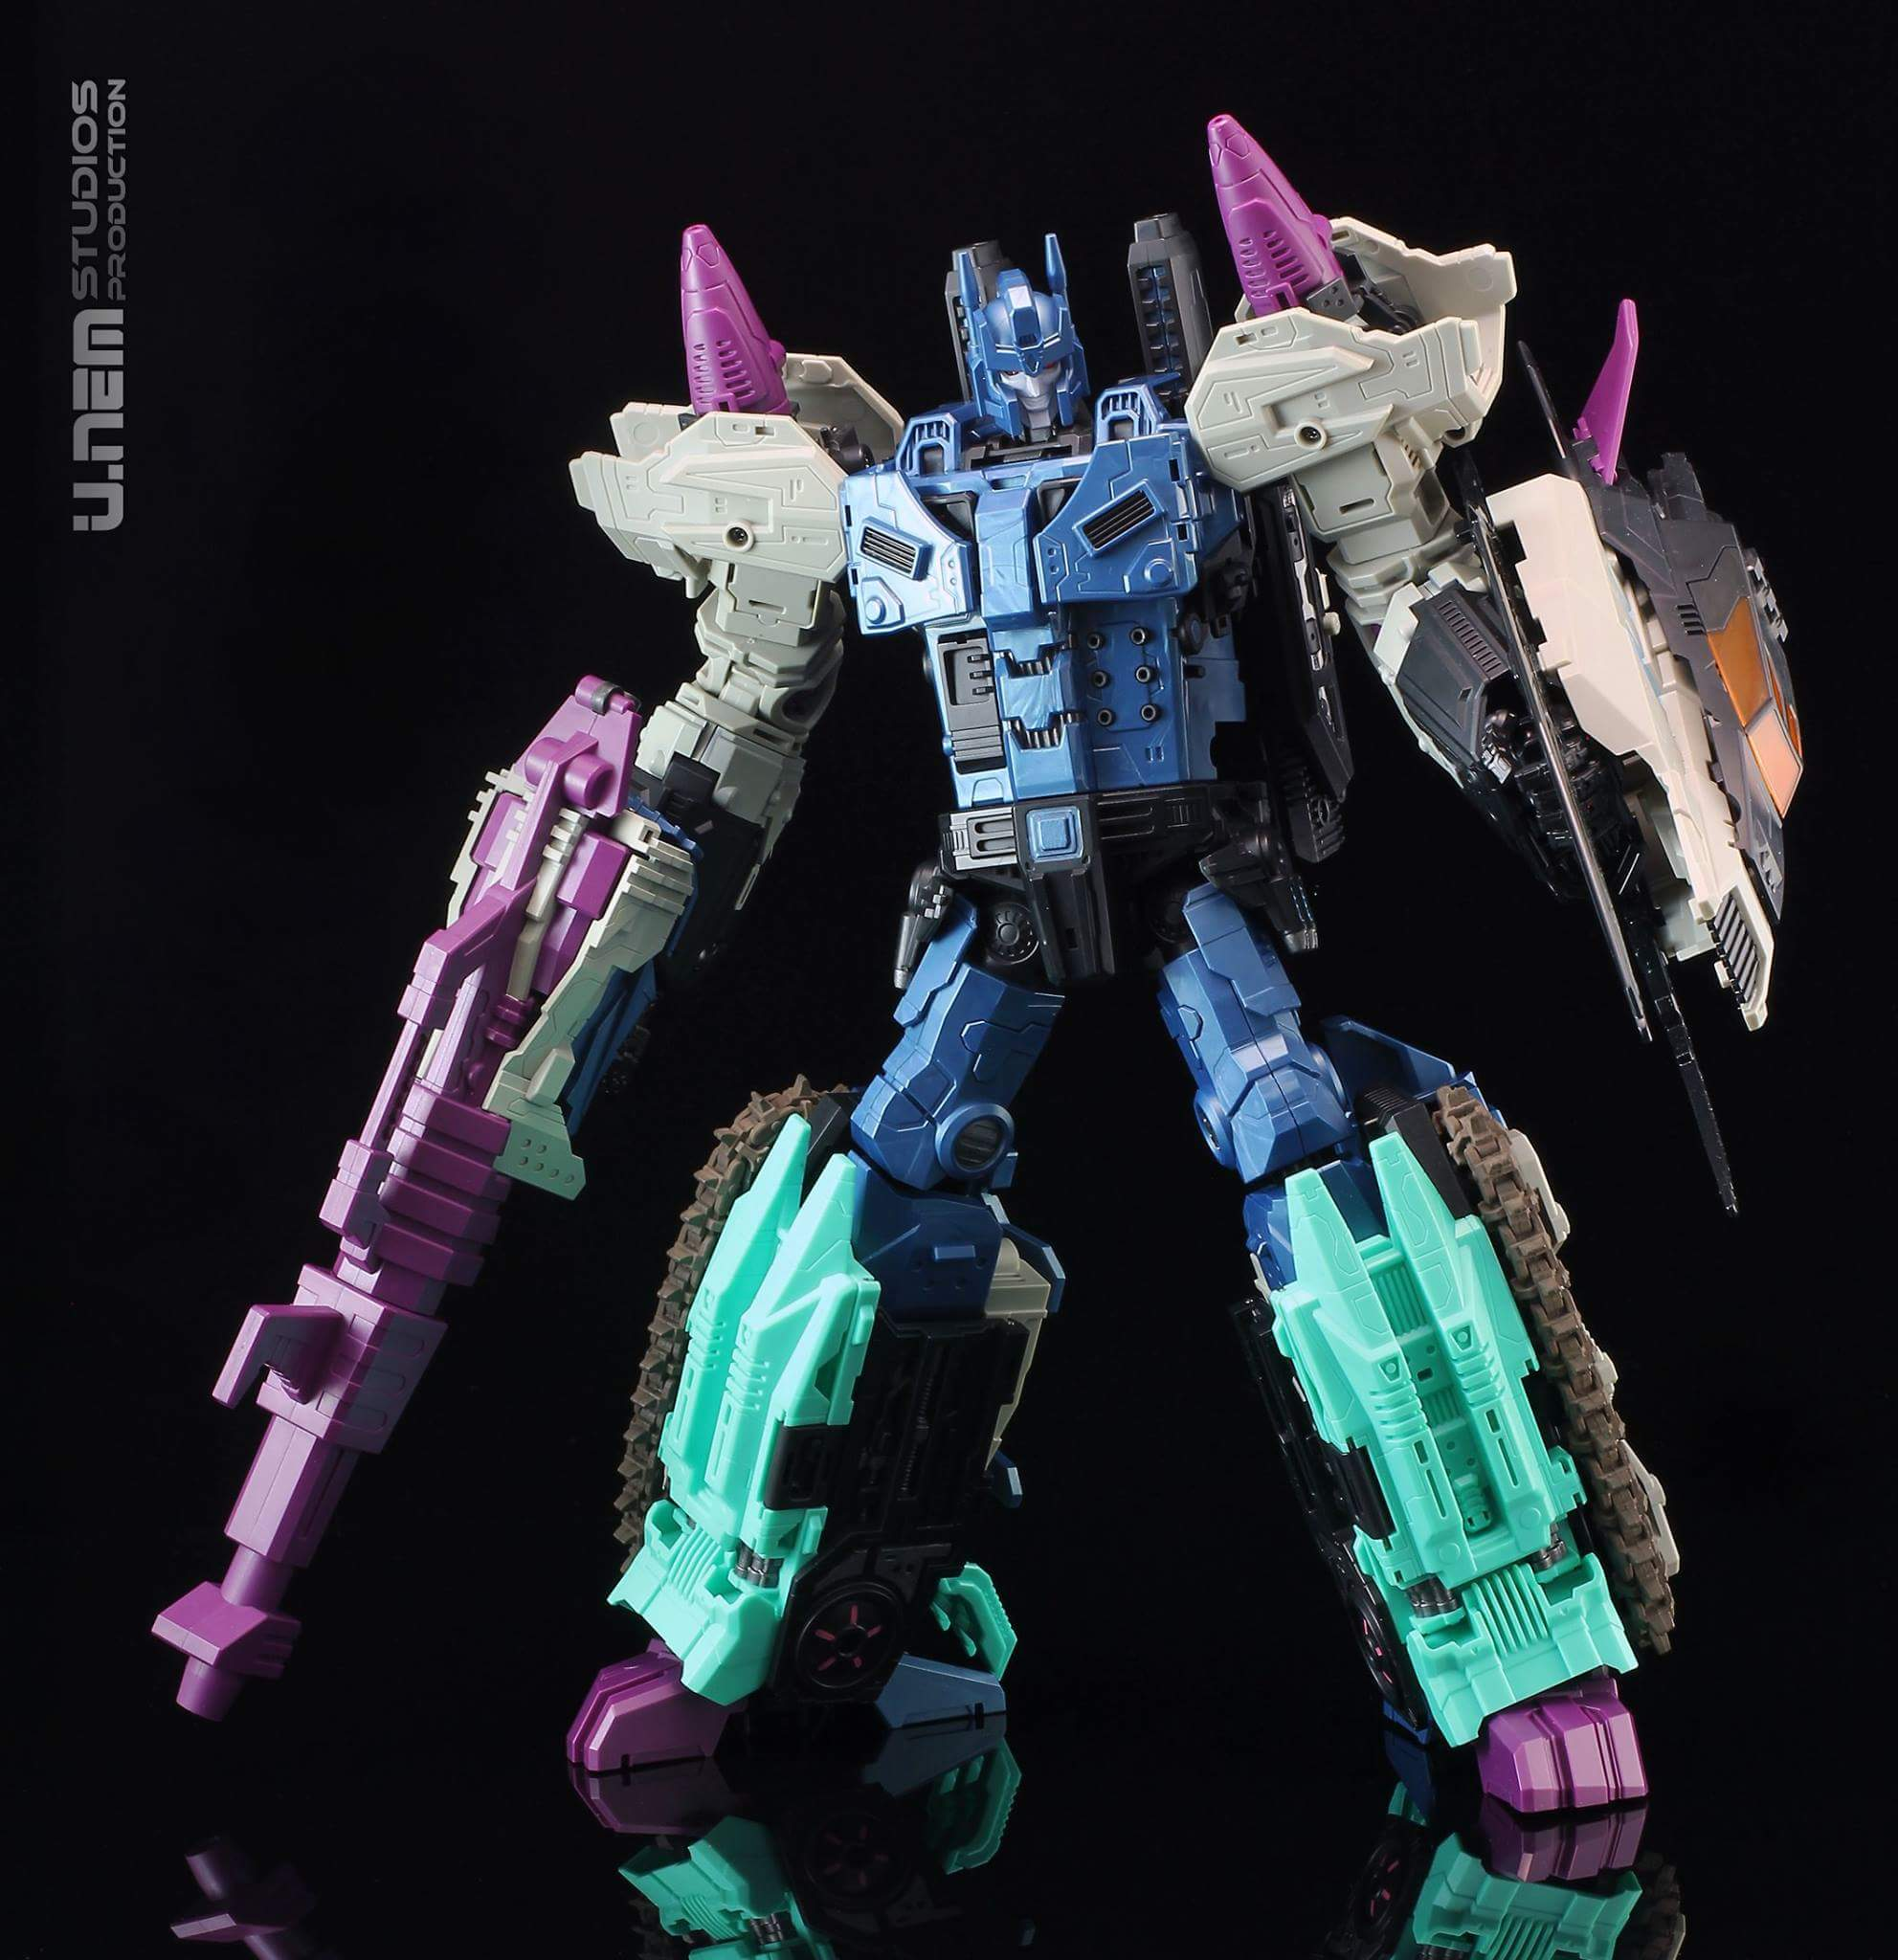 [Mastermind Creations] Produit Tiers - R-17 Carnifex - aka Overlord (TF Masterforce) - Page 2 VLscpljy